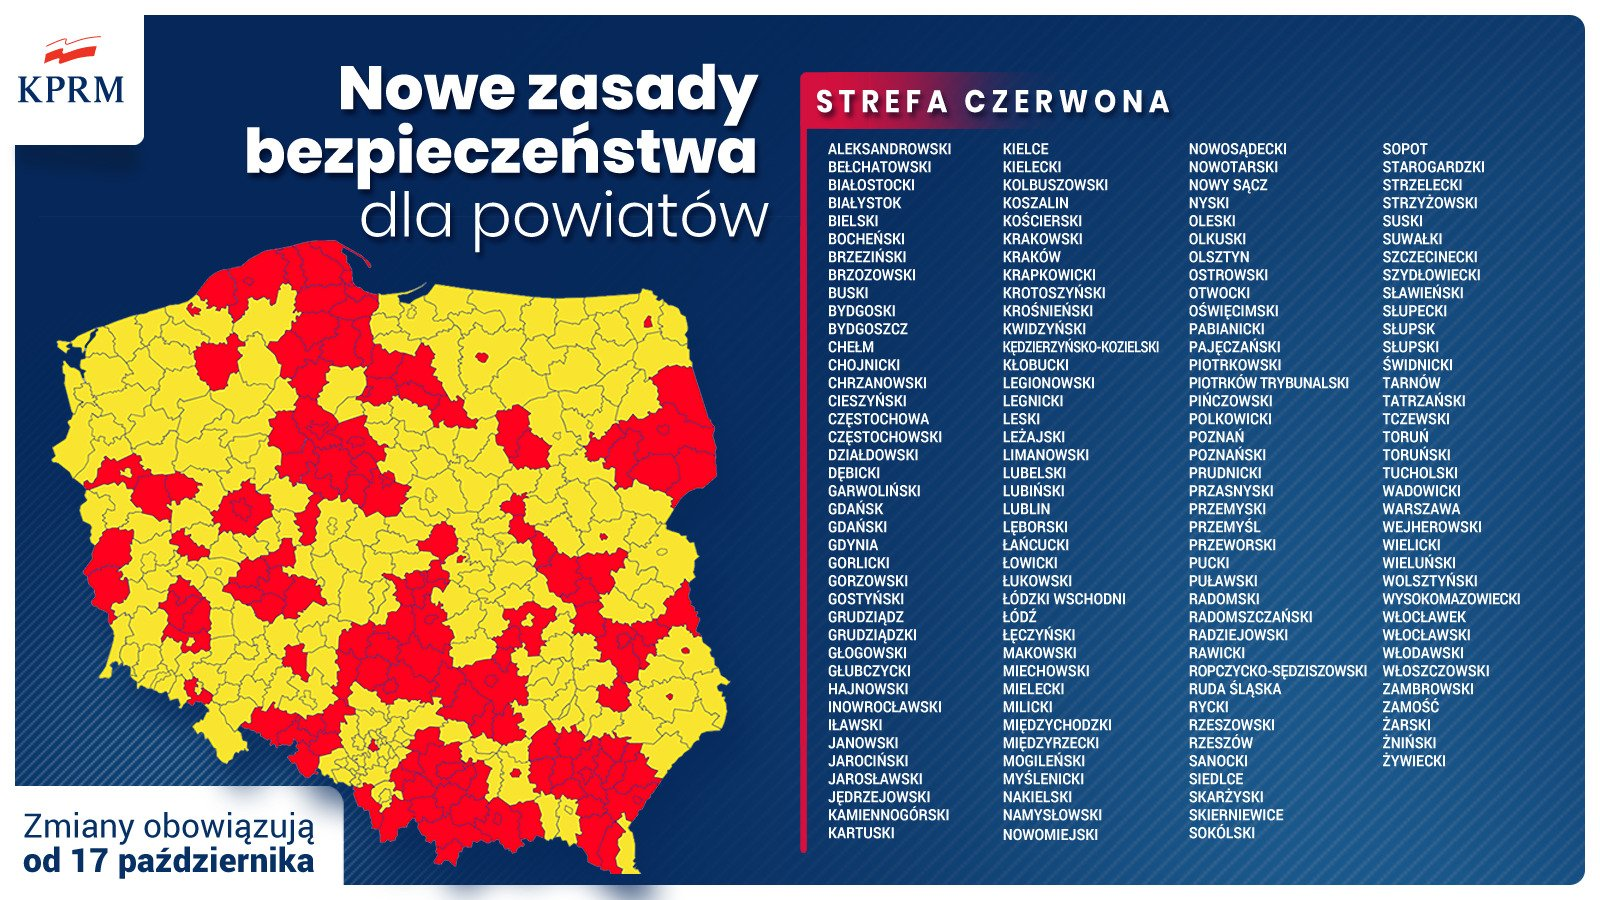 Covid-19 measures in Poland from 17 October